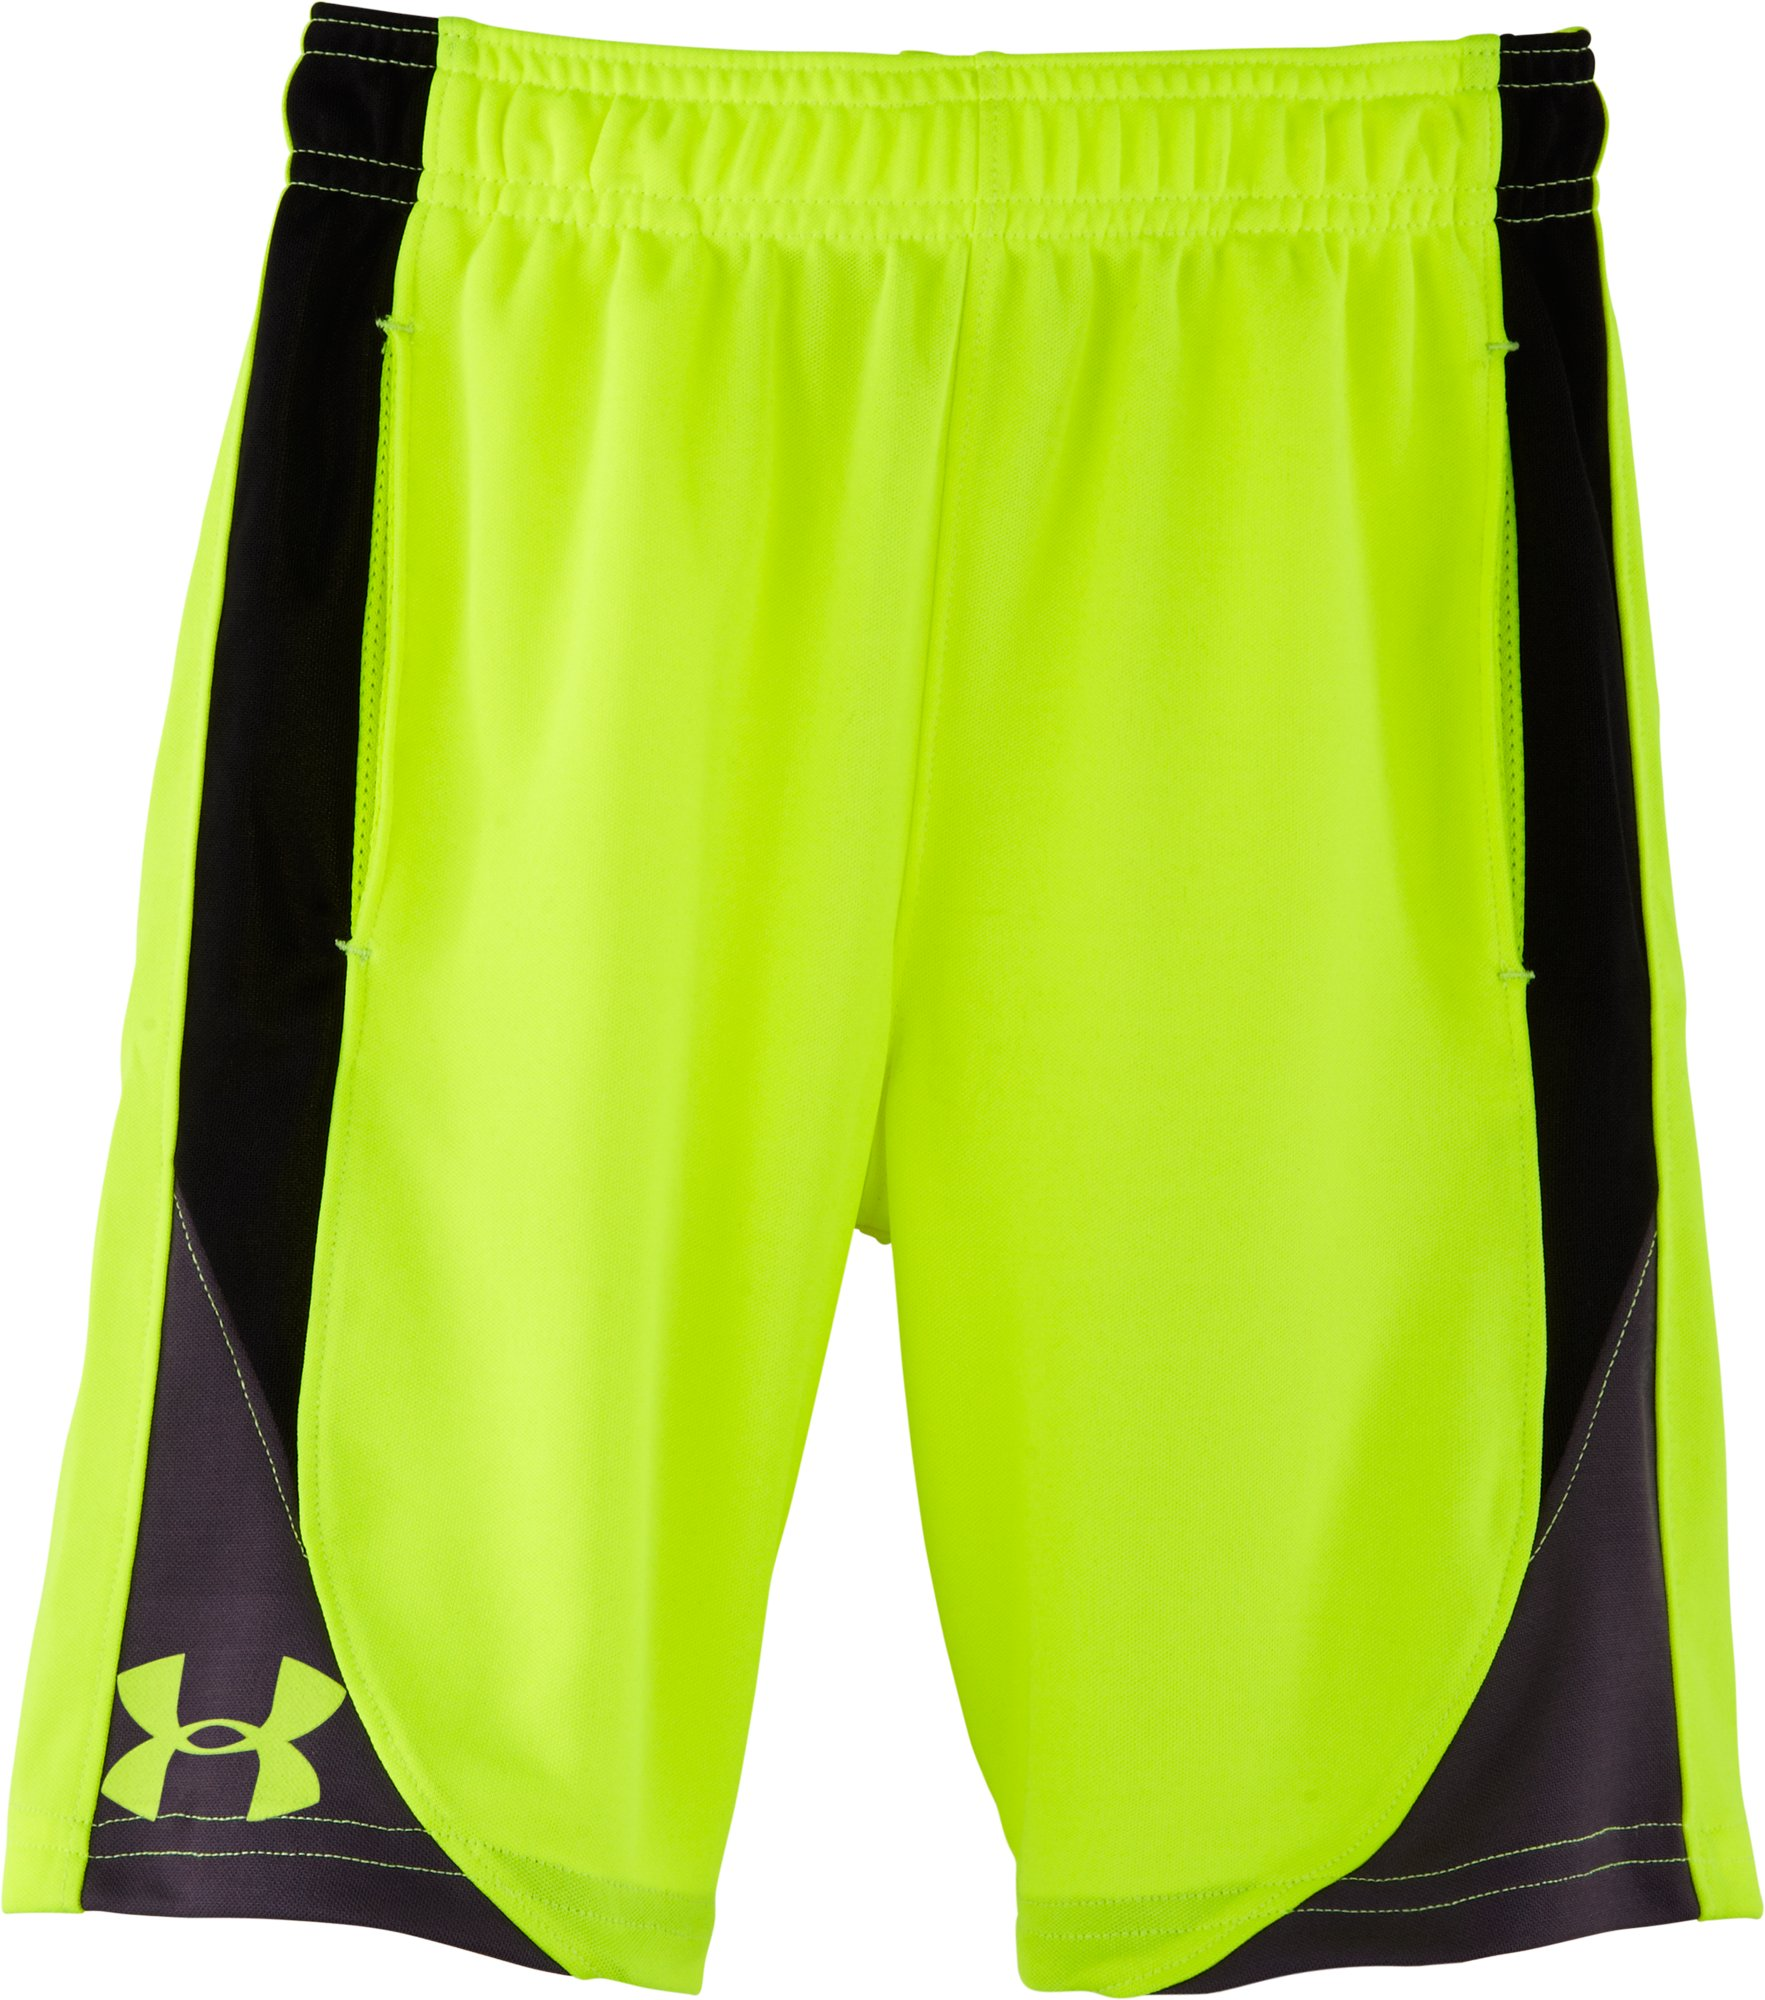 Boys' Toddler UA Flare Shorts, High-Vis Yellow, Laydown